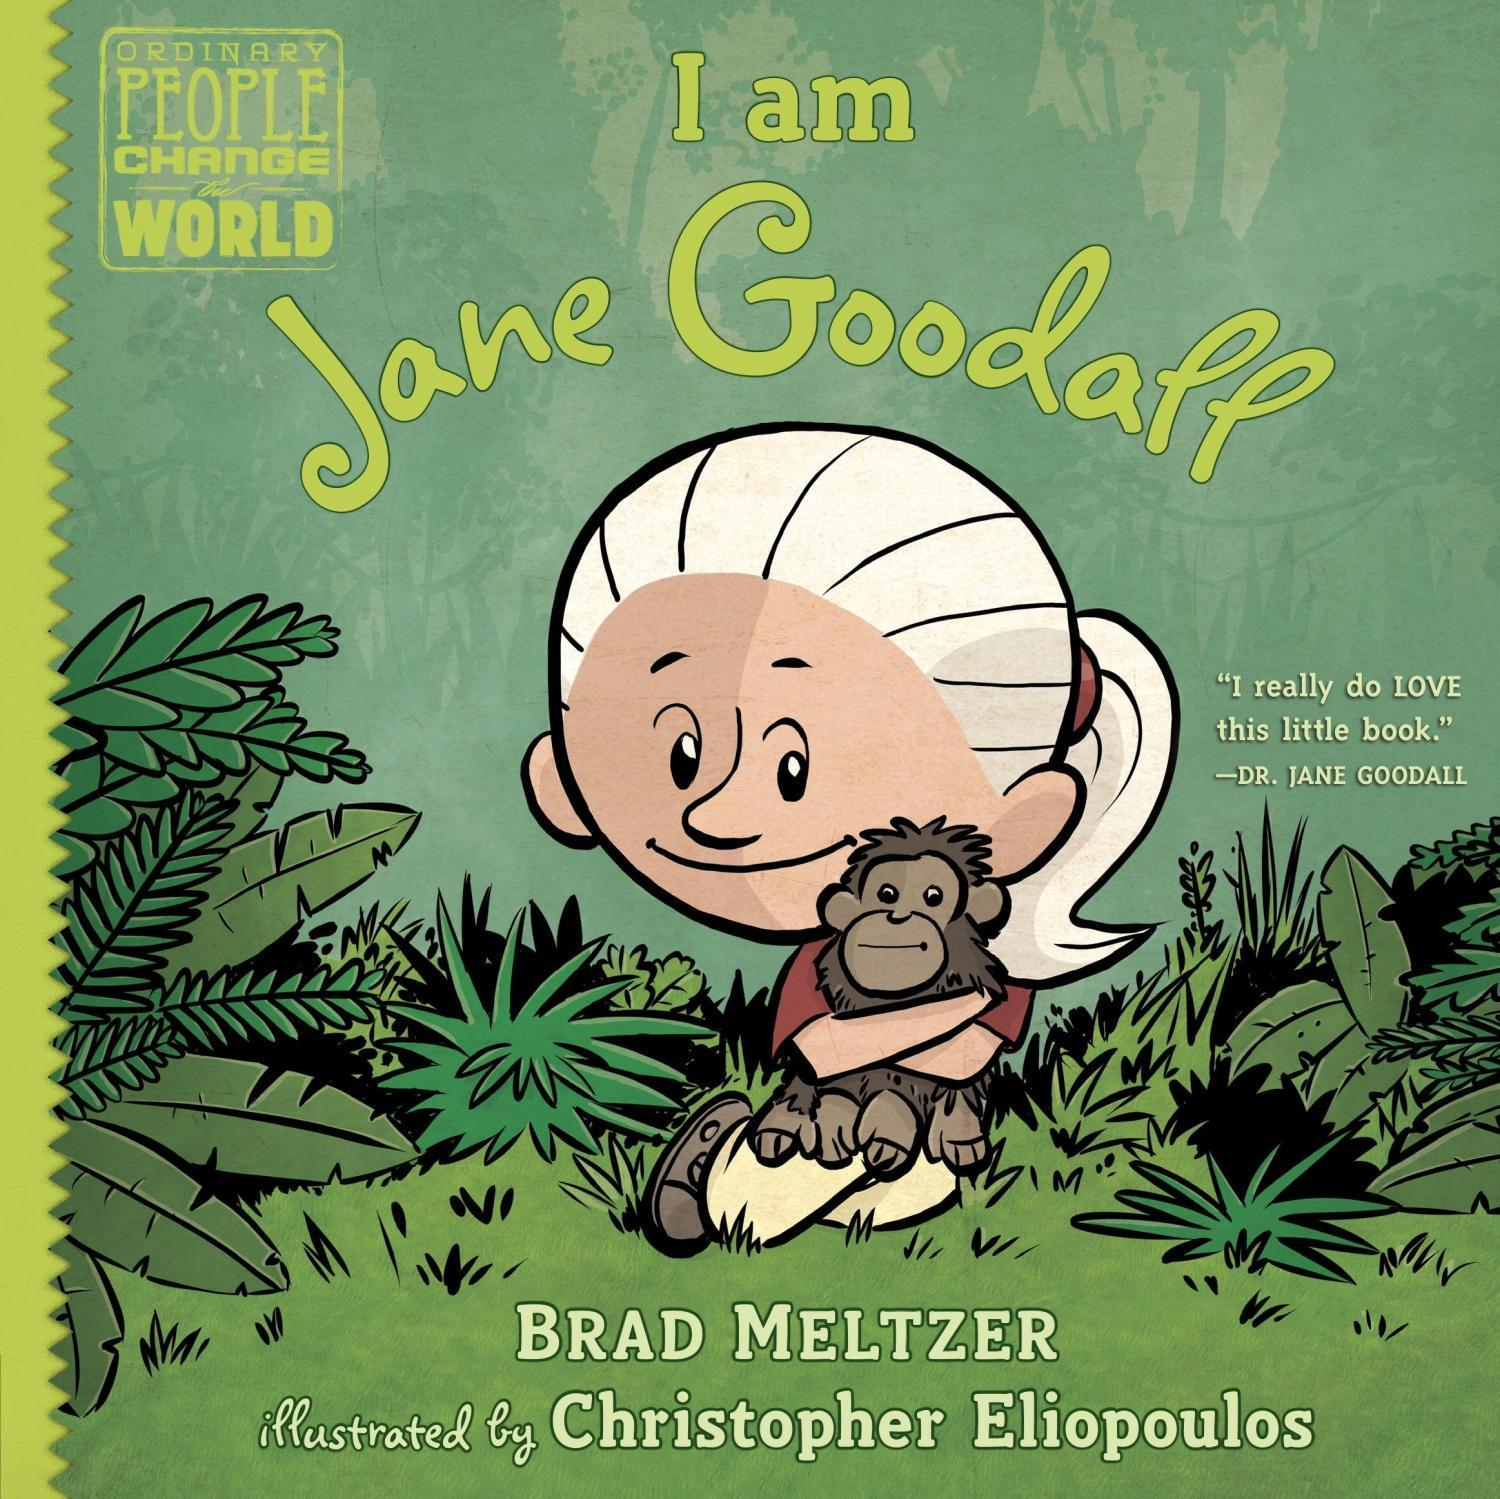 Little random house play i am jane goodall